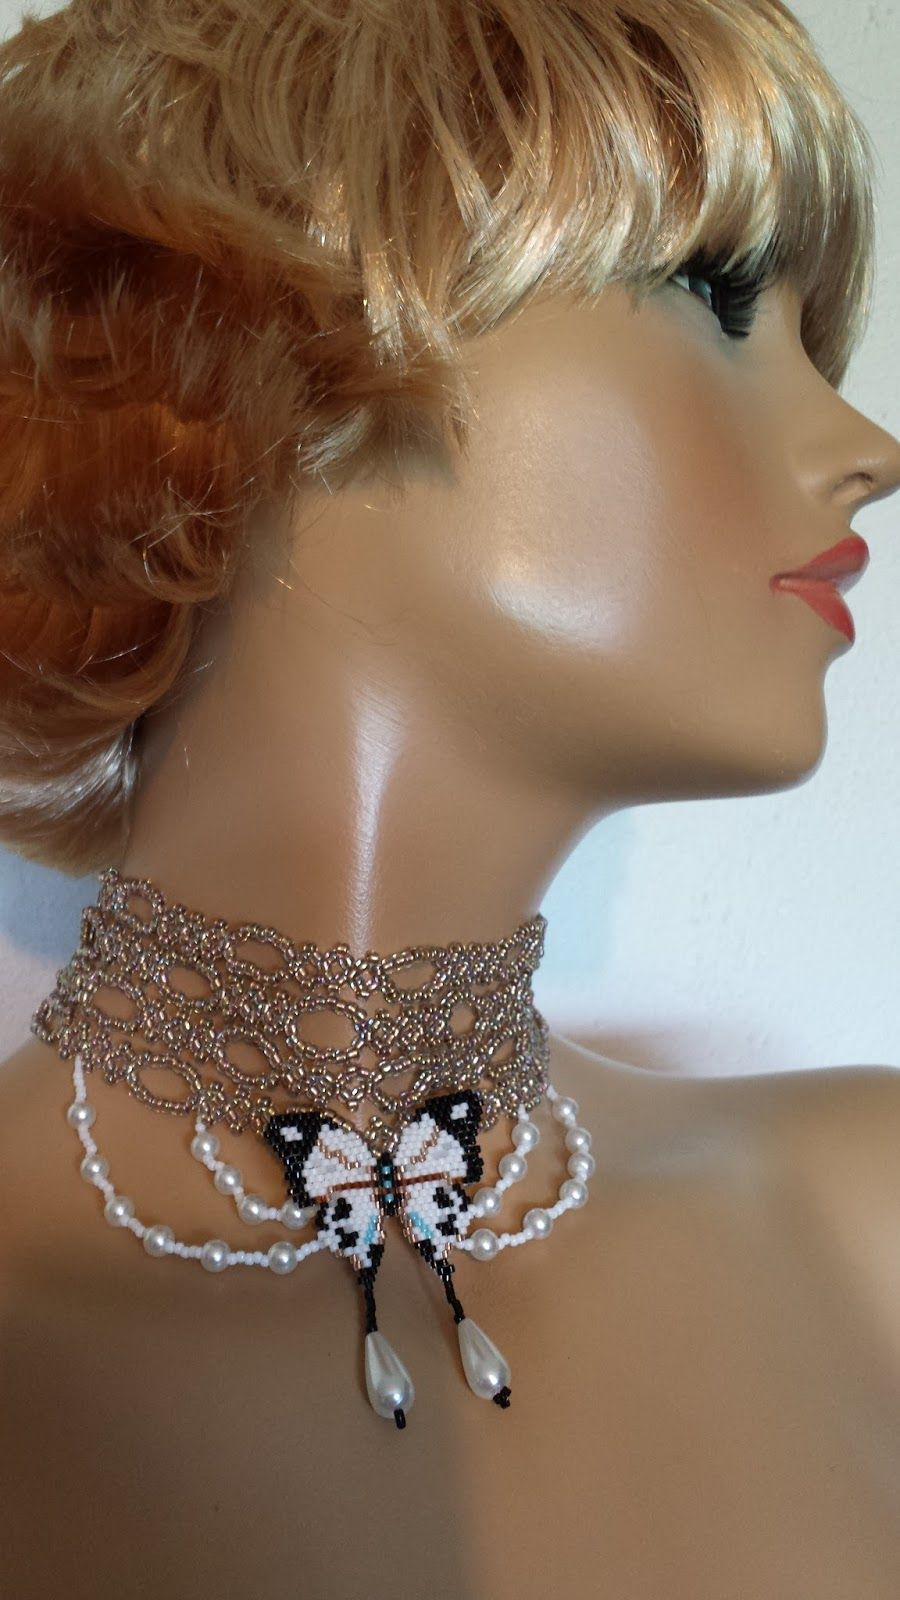 'Delicate' necklace by Lena Tamas (www.lenahandmadefashion.blogspot.co.uk).  Made with Japanese beads, crystals and pearls